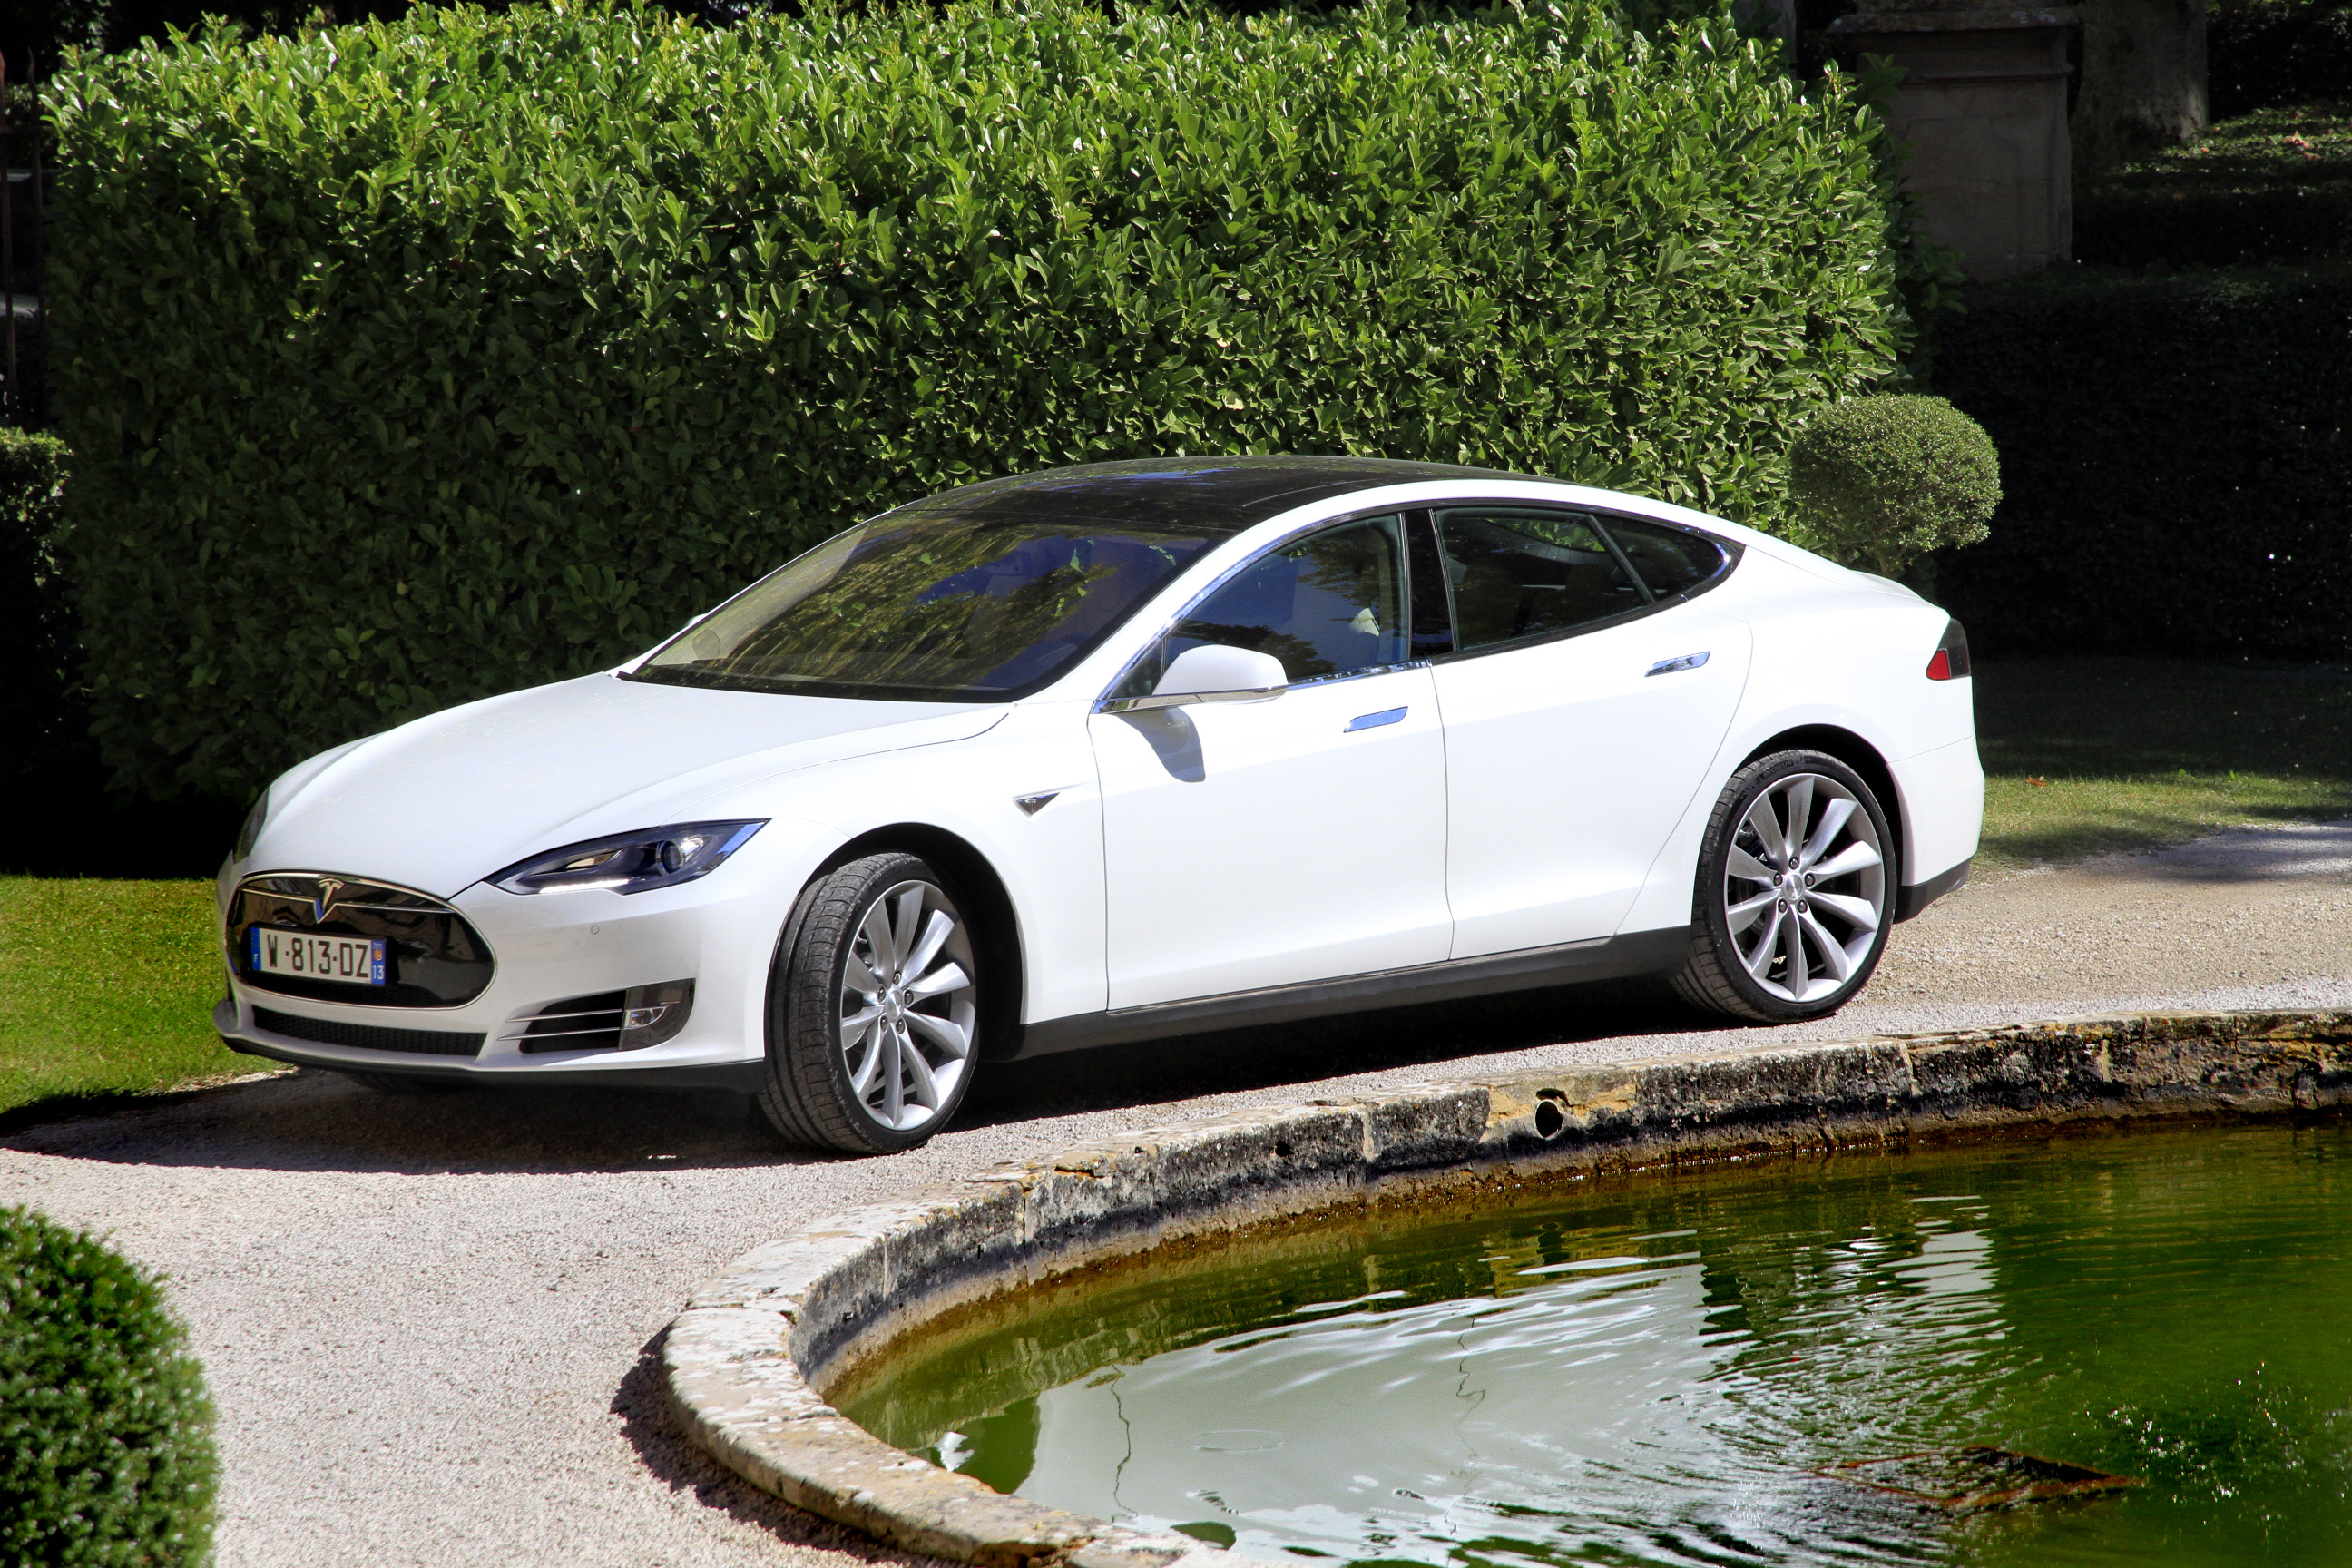 tesla ouvre une succursale aix en provence. Black Bedroom Furniture Sets. Home Design Ideas